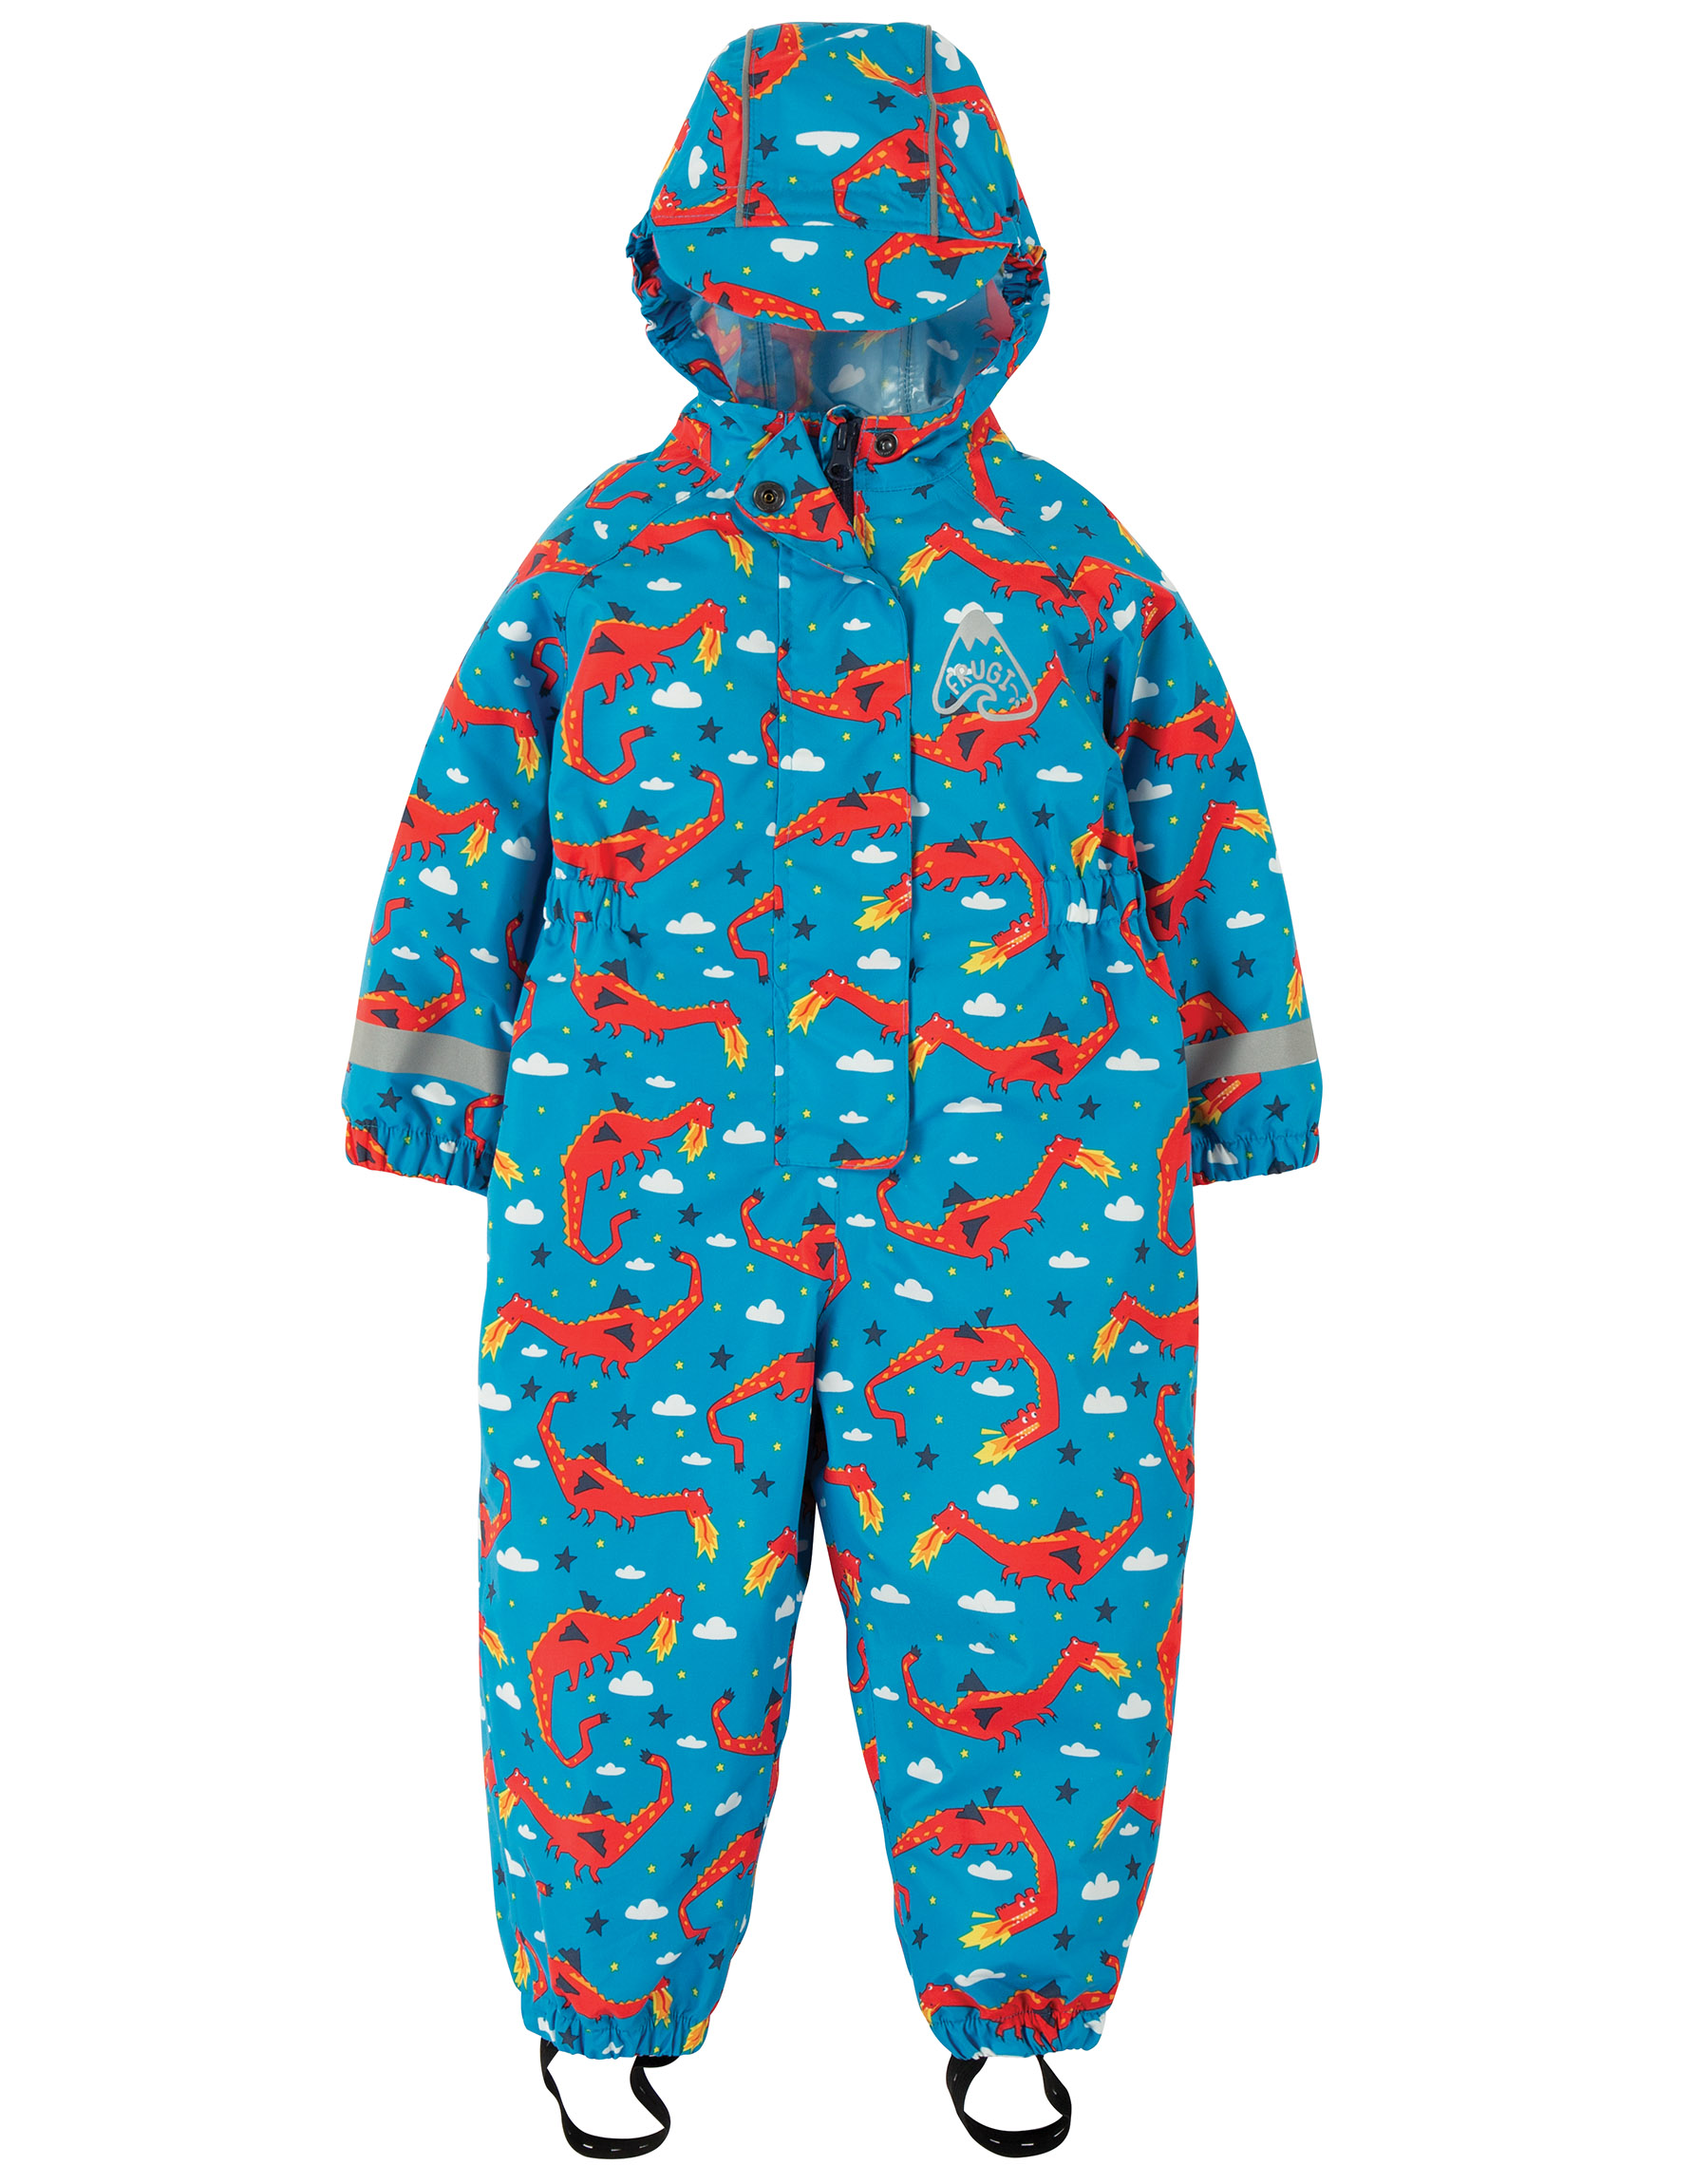 Frugi - Rain or Shine - Dragon Dreams